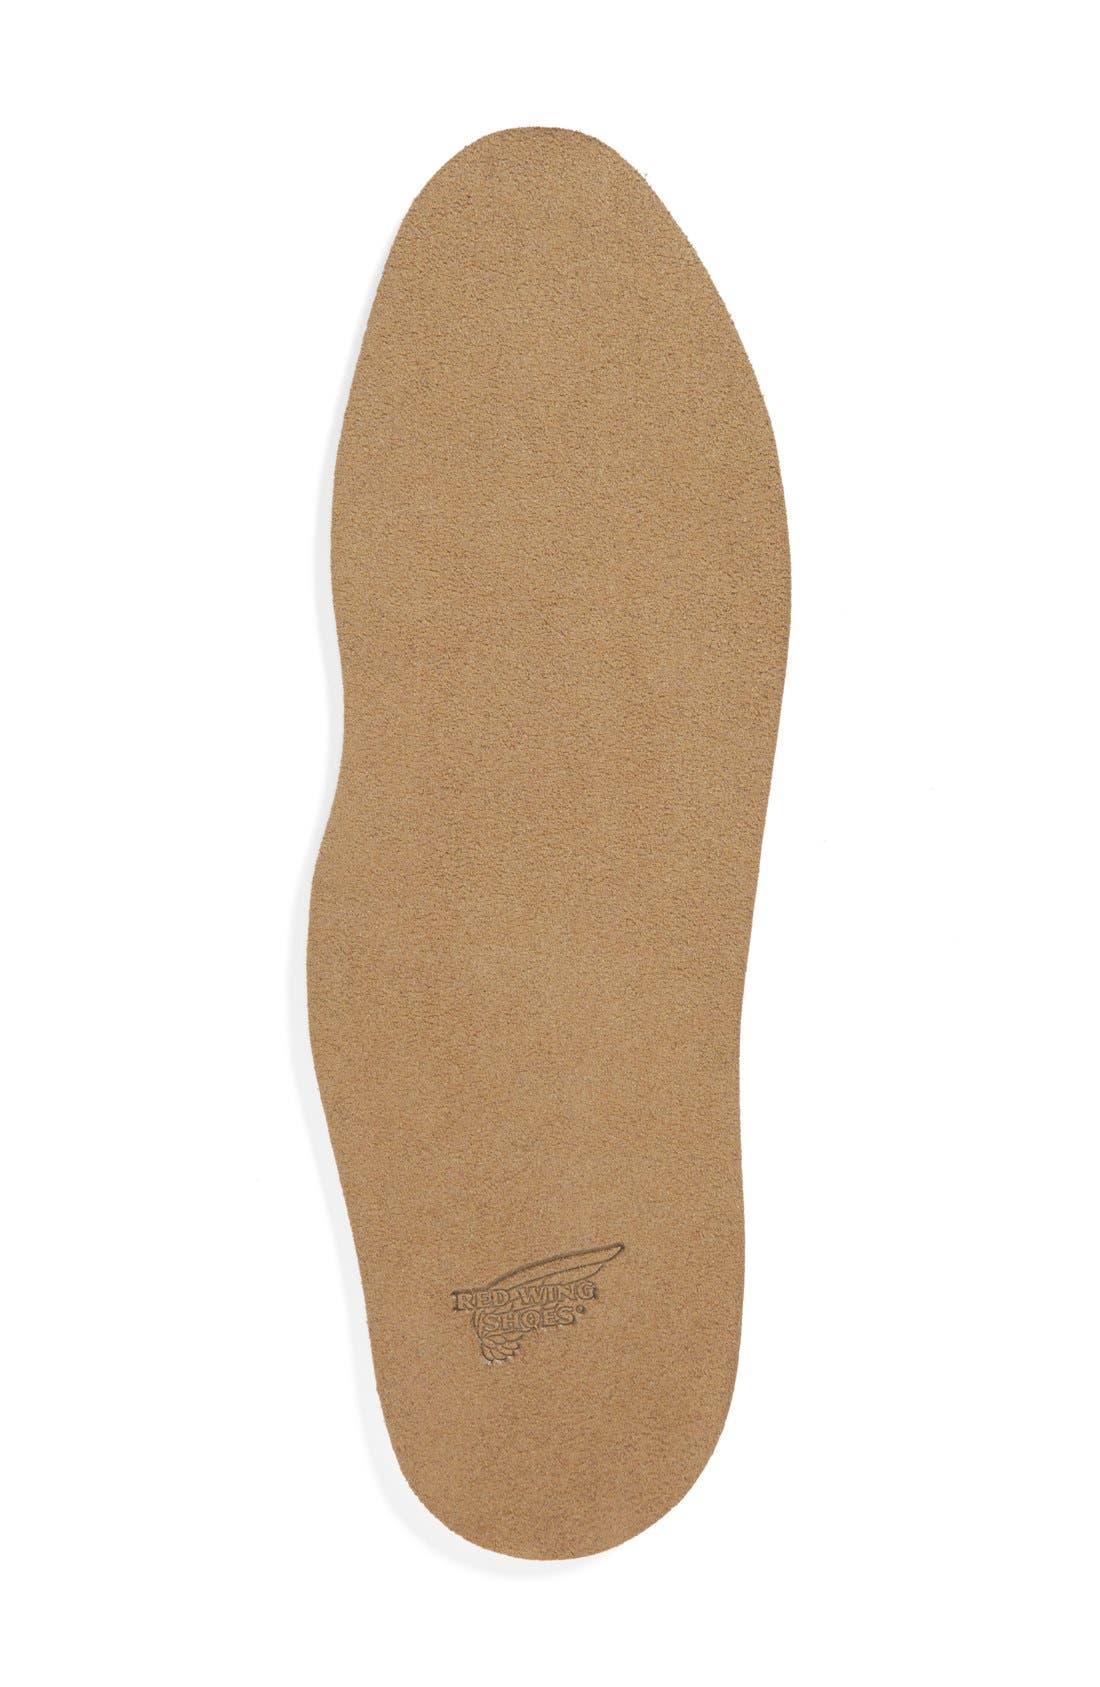 'Shaped Comfort' Insoles,                         Main,                         color, BROWN